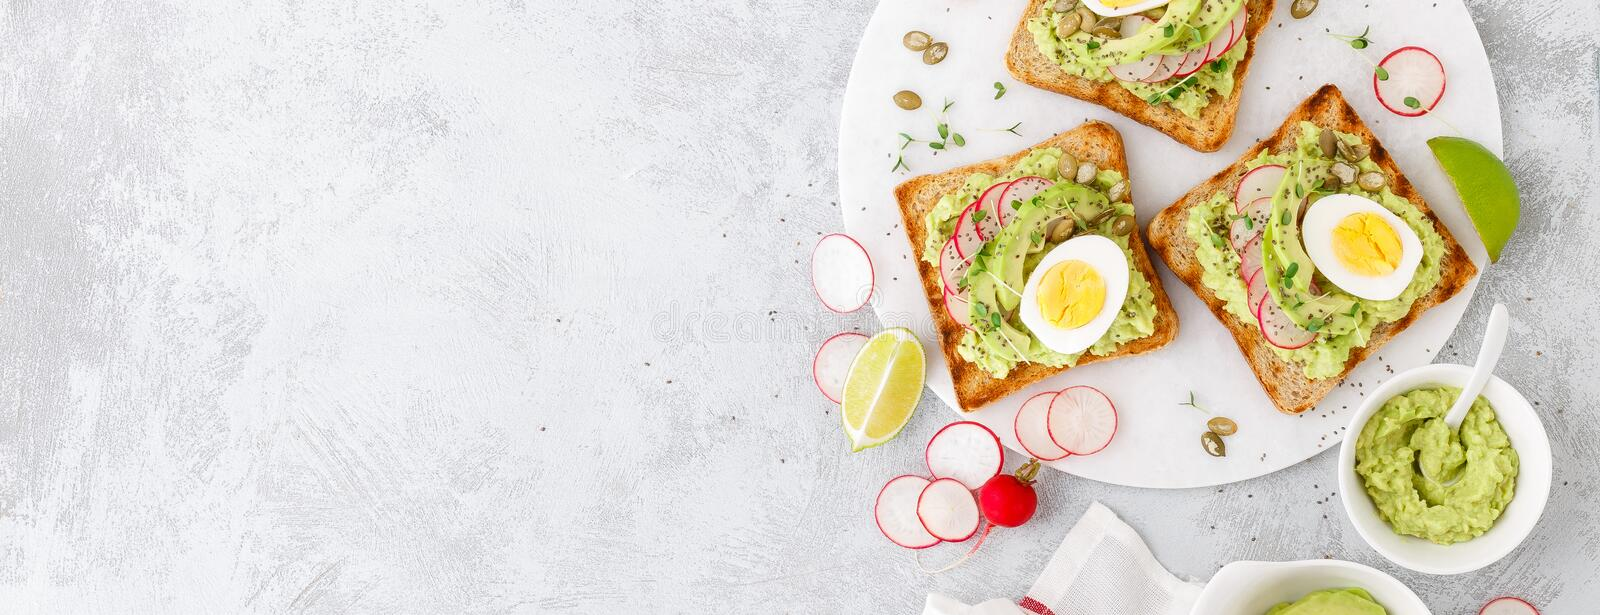 Sandwiches with avocado guacamole, fresh radish, boiled egg, chia and pumpkin seeds. Diet breakfast. Delicious and healthy plant-b. Ased trend food. Flat lay stock images